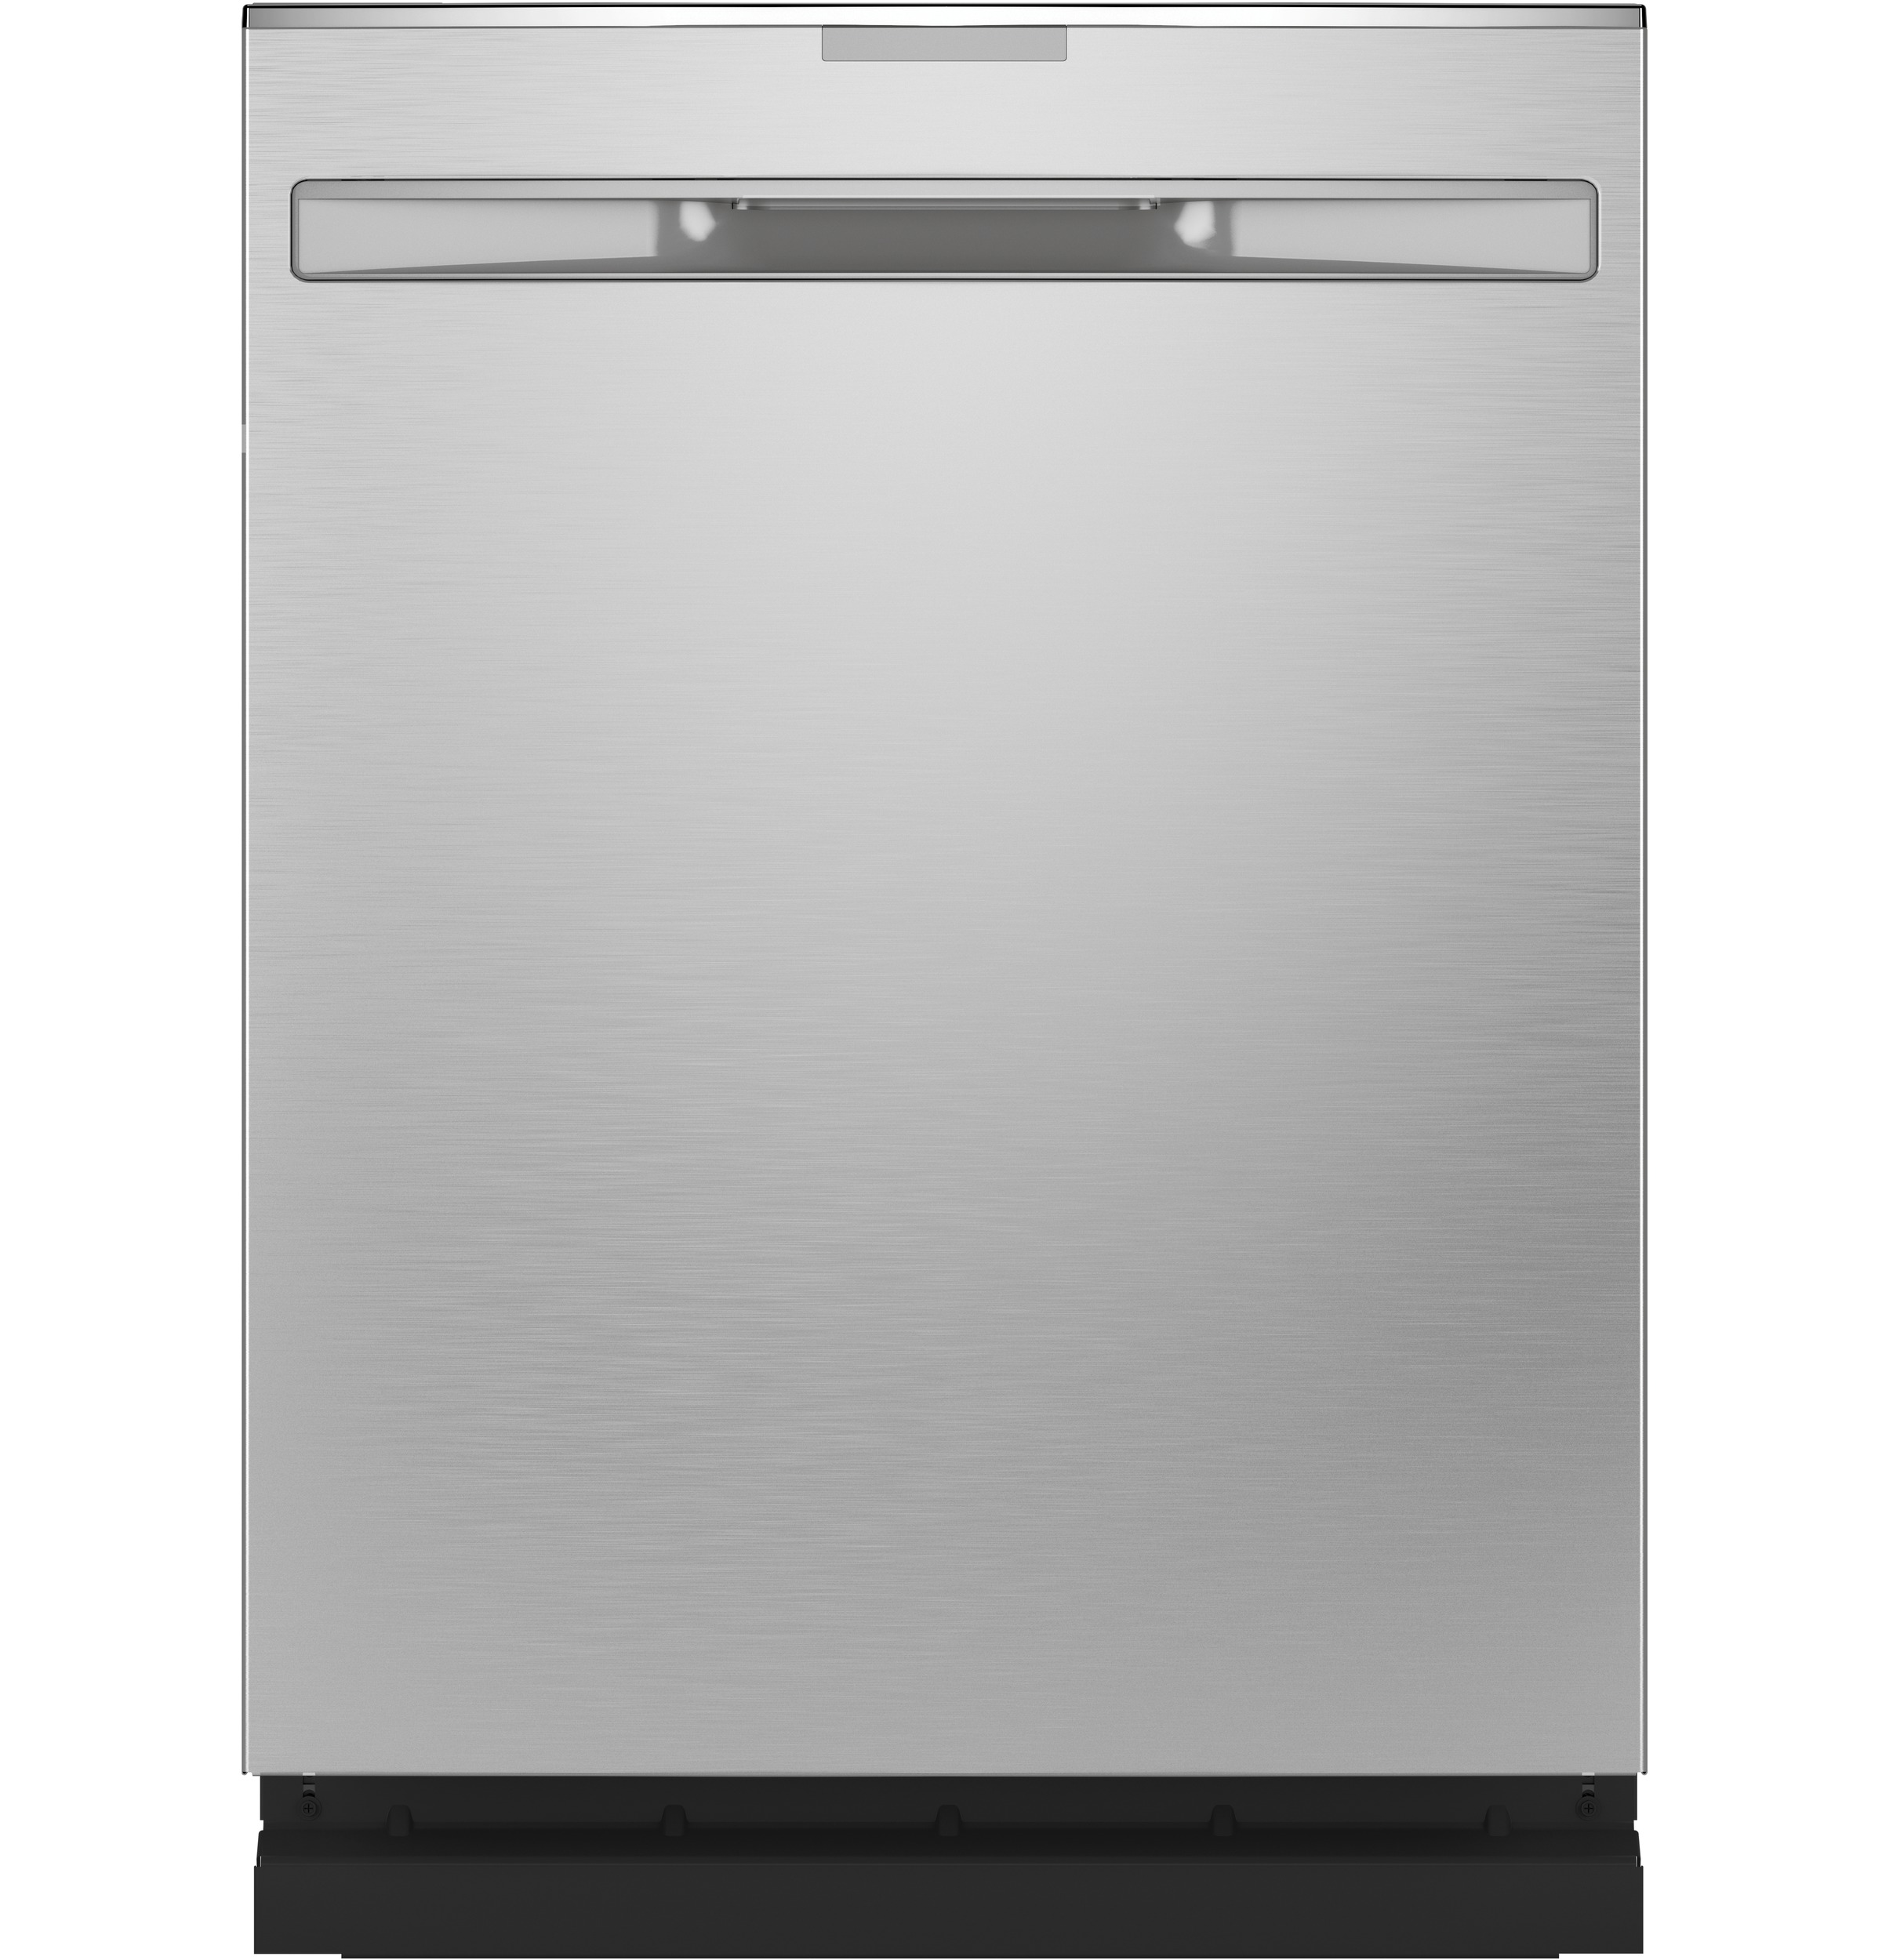 GE Profile Dishwasher in Stainless Steel color showcased by Corbeil Electro Store